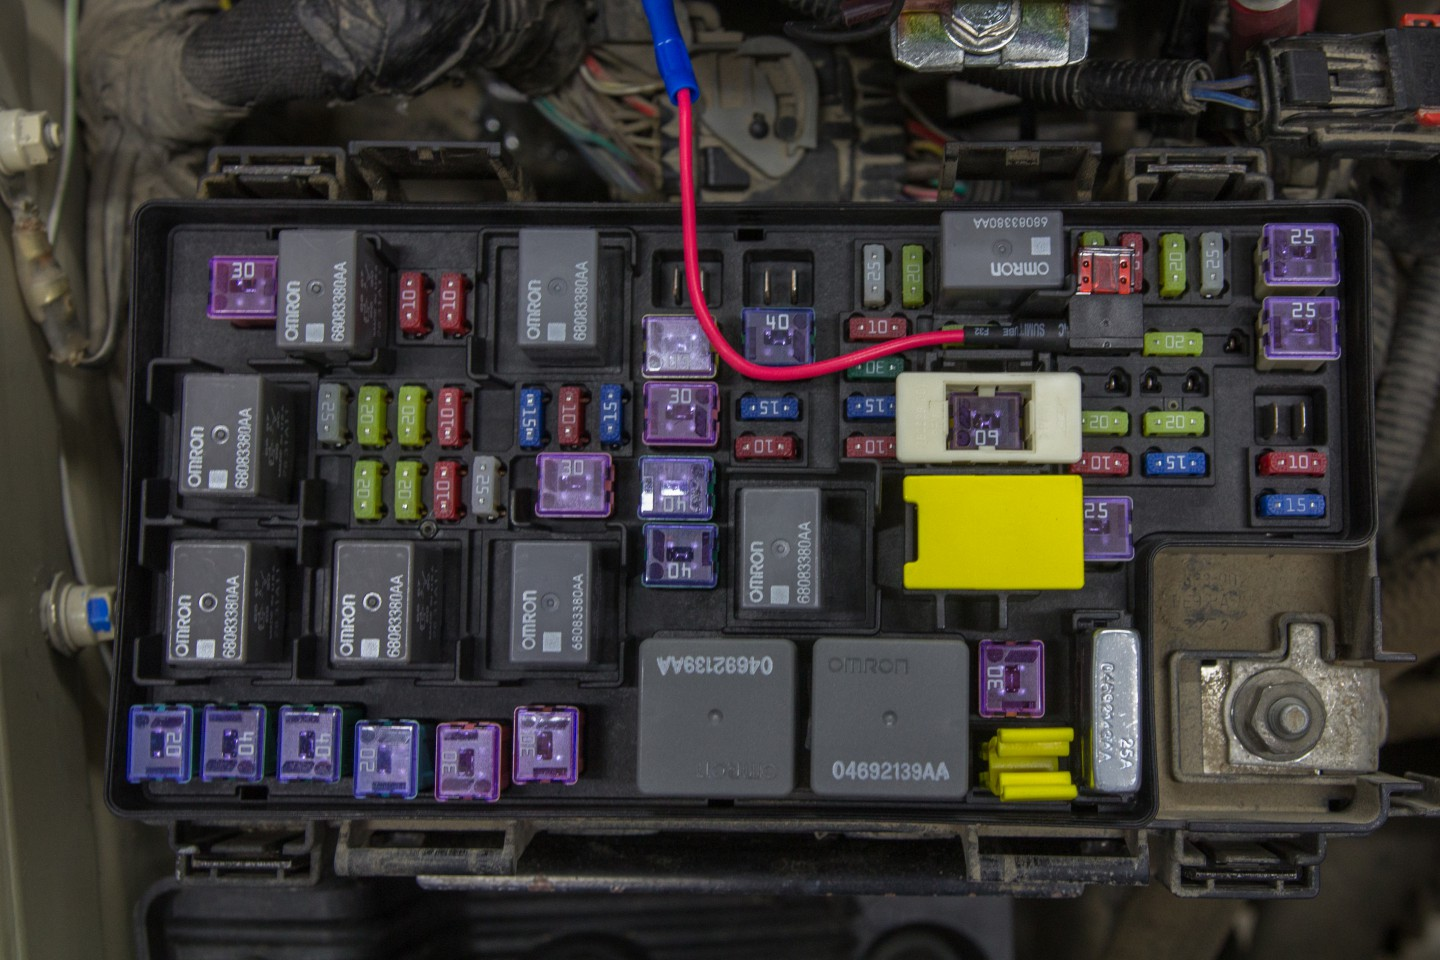 Diy Jeep Wrangler Jk Isolated Dual Batteries The Road Chose Me House Fuse Box Cover Mini Add A Circuit Holder In